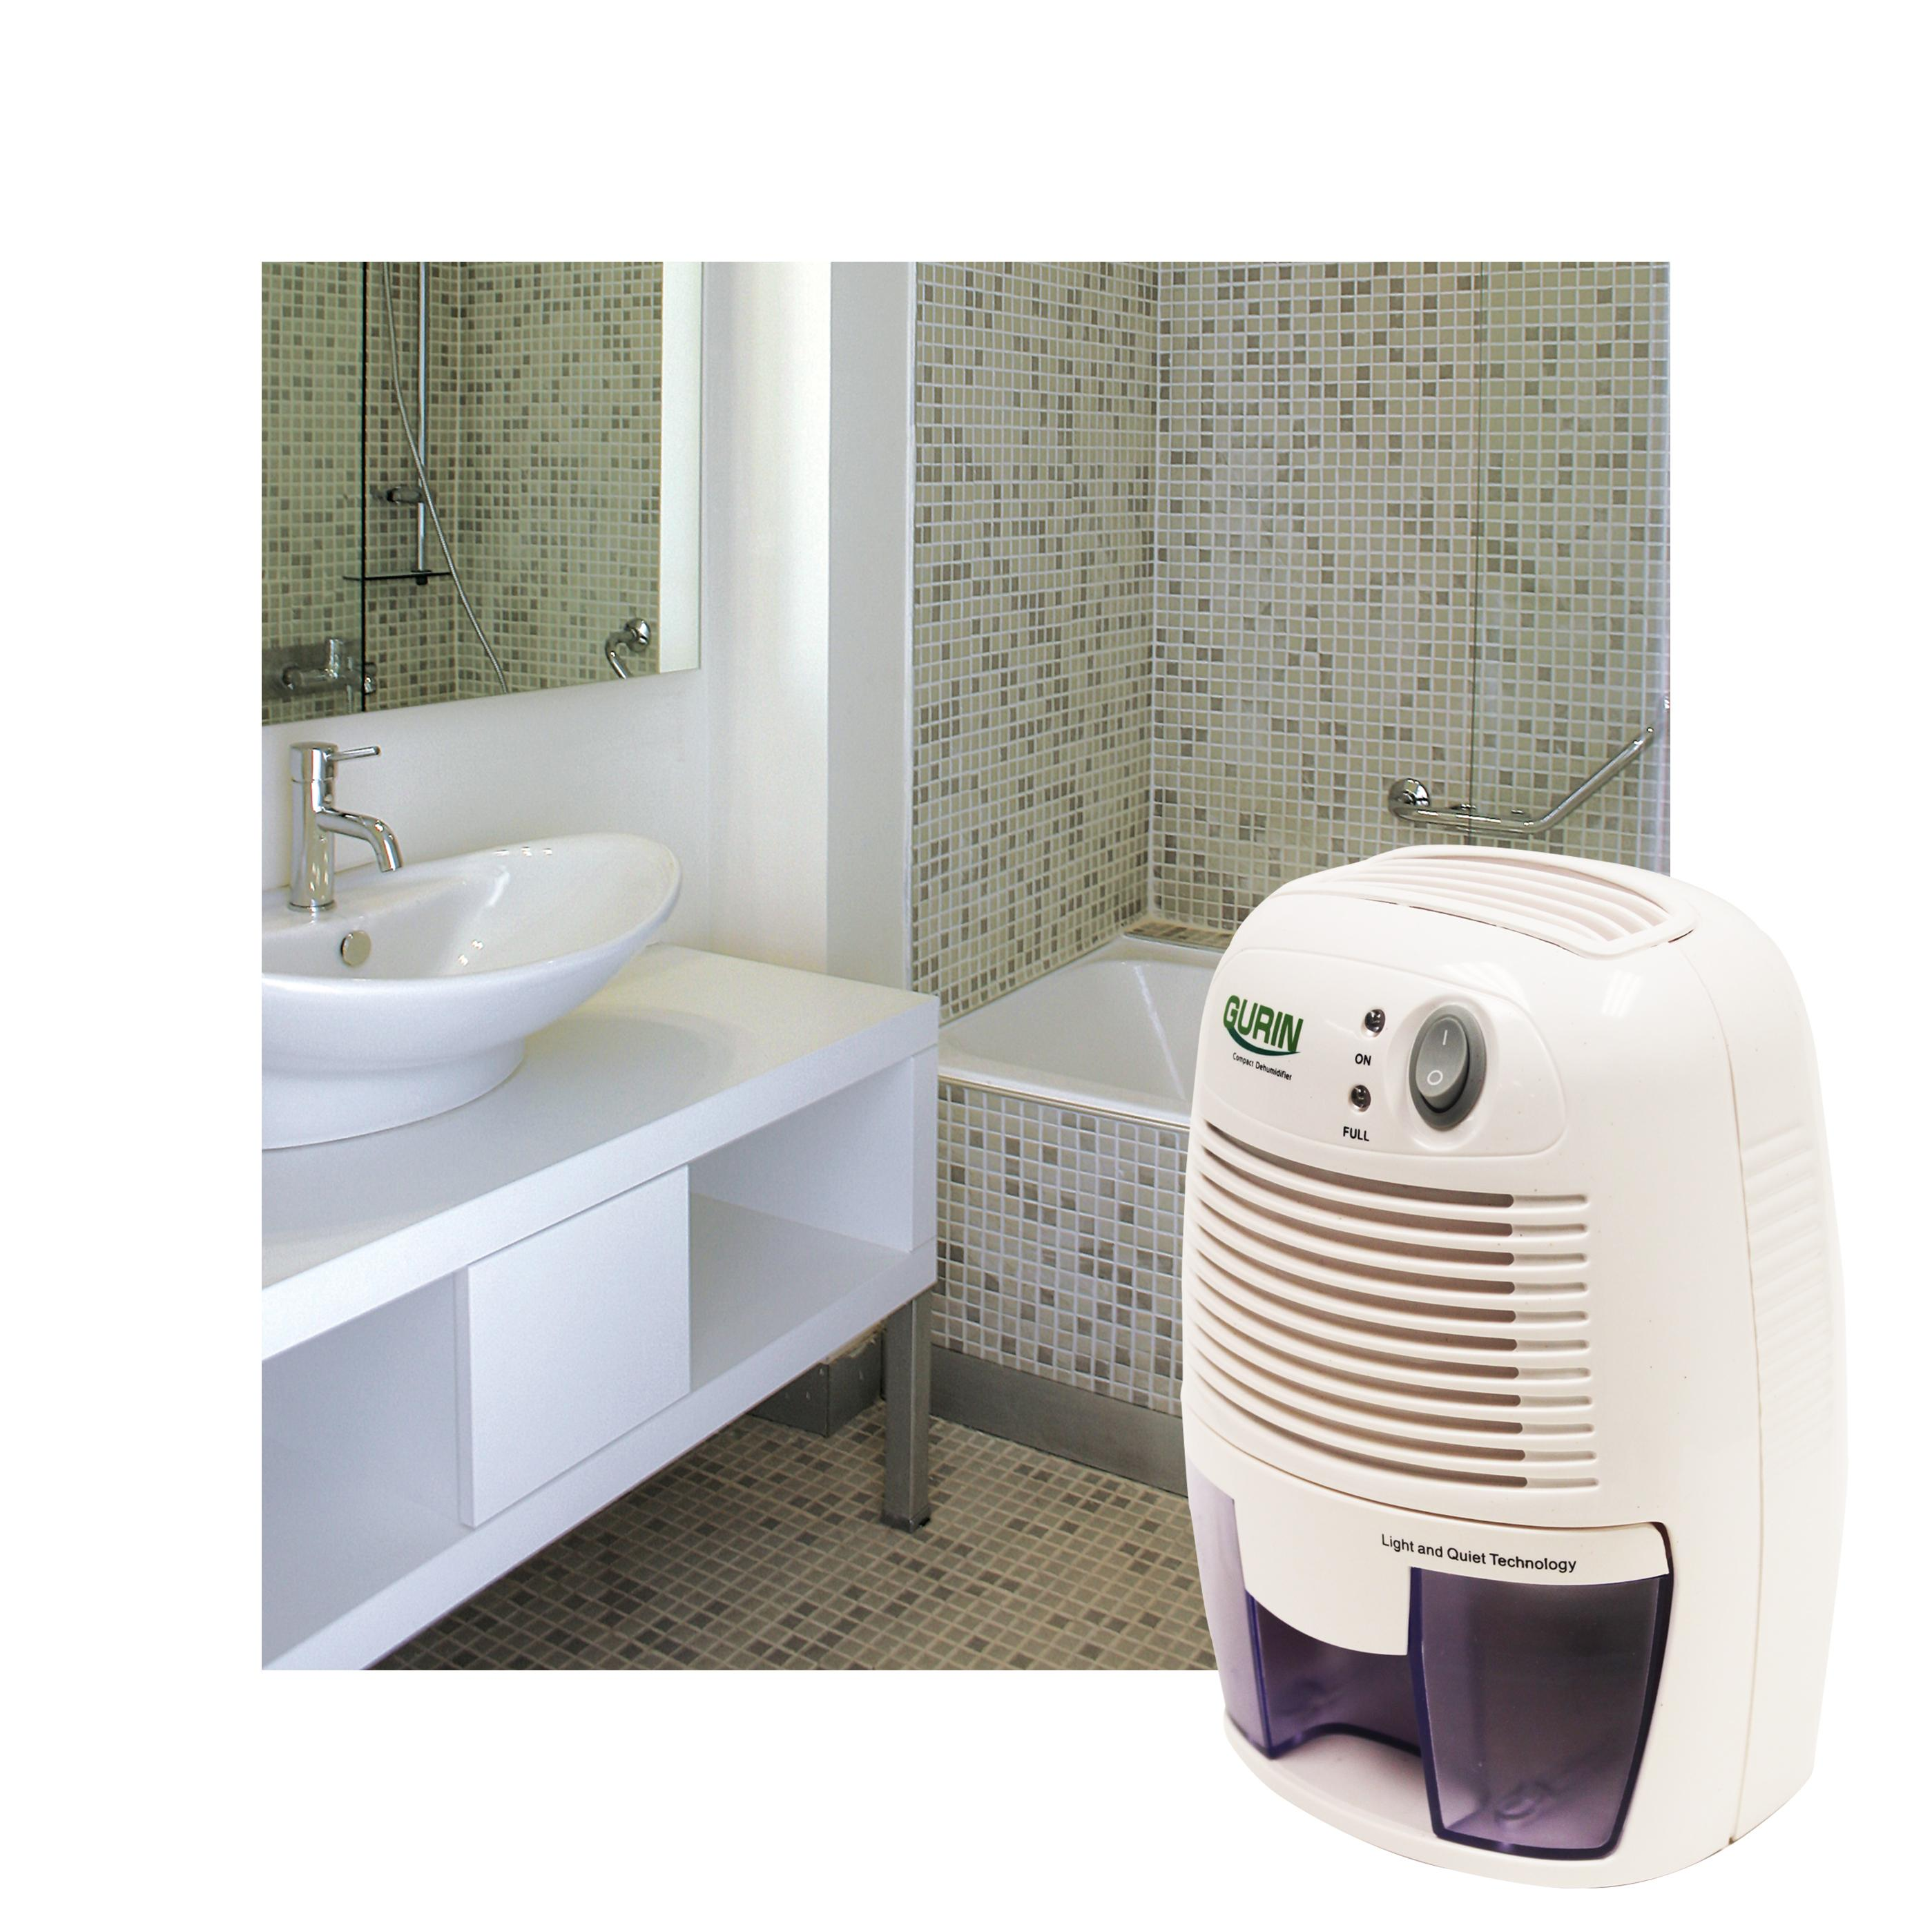 Gurin DHMD 210 Electric Compact Dehumidifier in Bathroom #756456